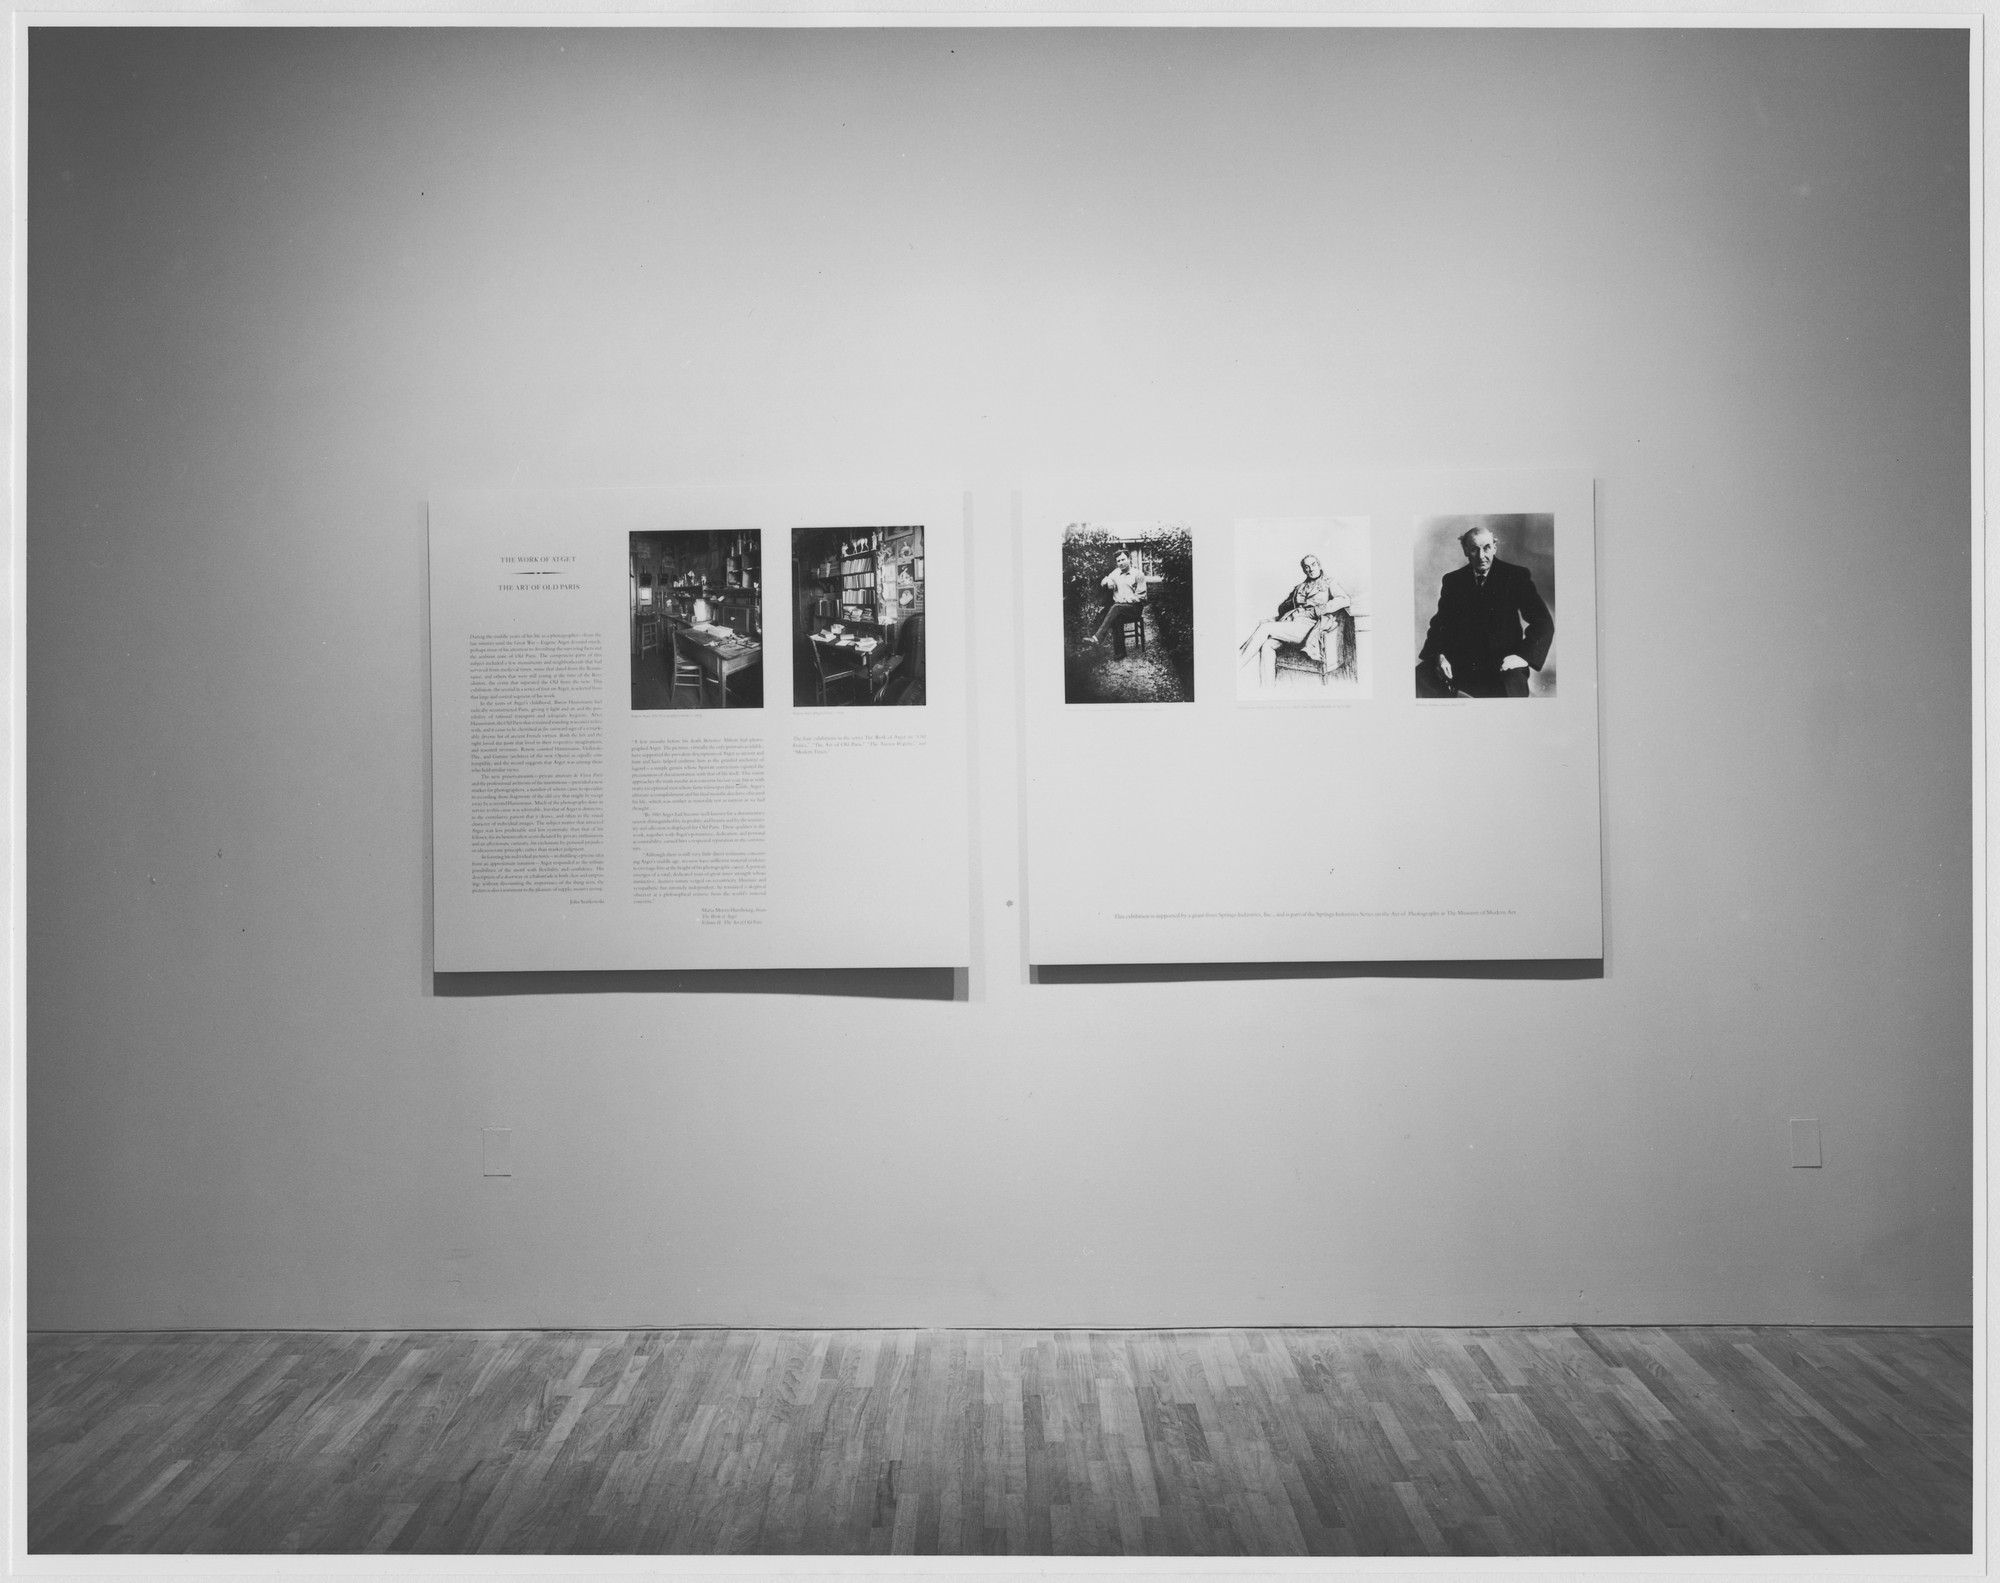 "Installation view of the exhibition, ""The Work of Atget: The Art of Old Paris"" October 14, 1982–January 4, 1983. Photographic Archive. The Museum of Modern Art Archives, New York. IN1335.1. Photograph by Mali Olatunji."